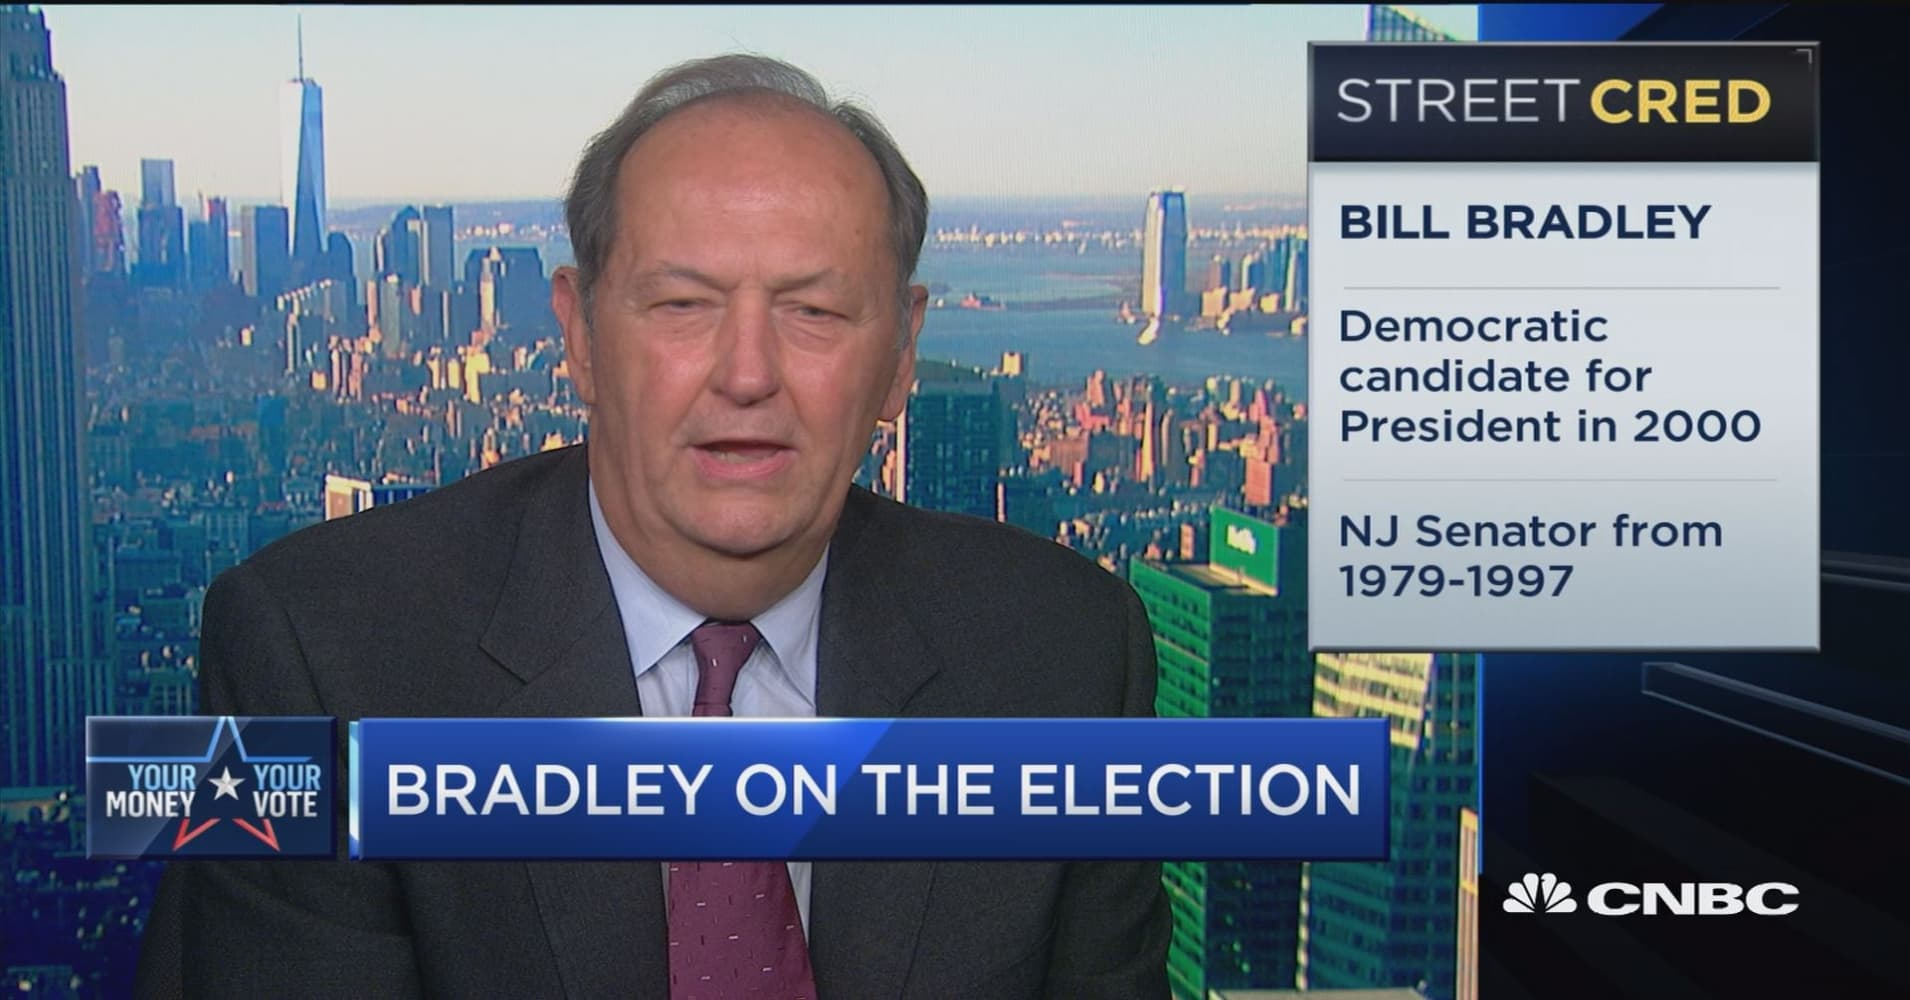 Bill Bradley Vote for someone you can trust with your life